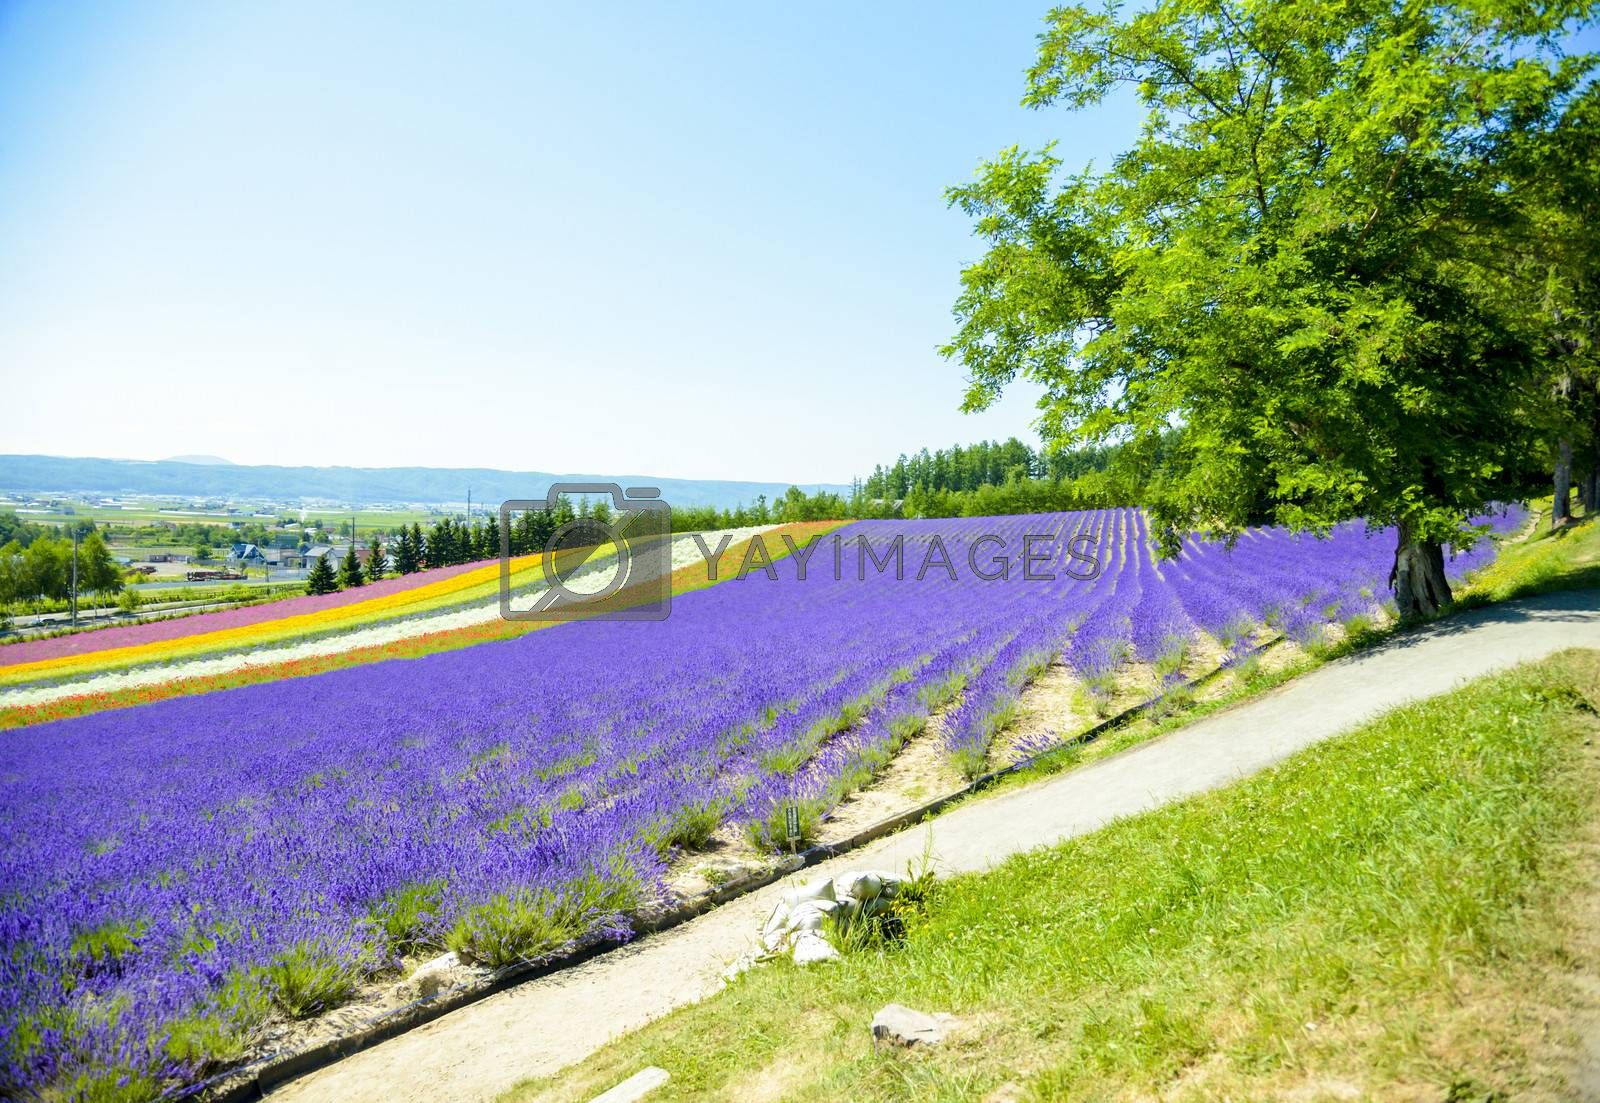 Lavender and colorful flower in the field3